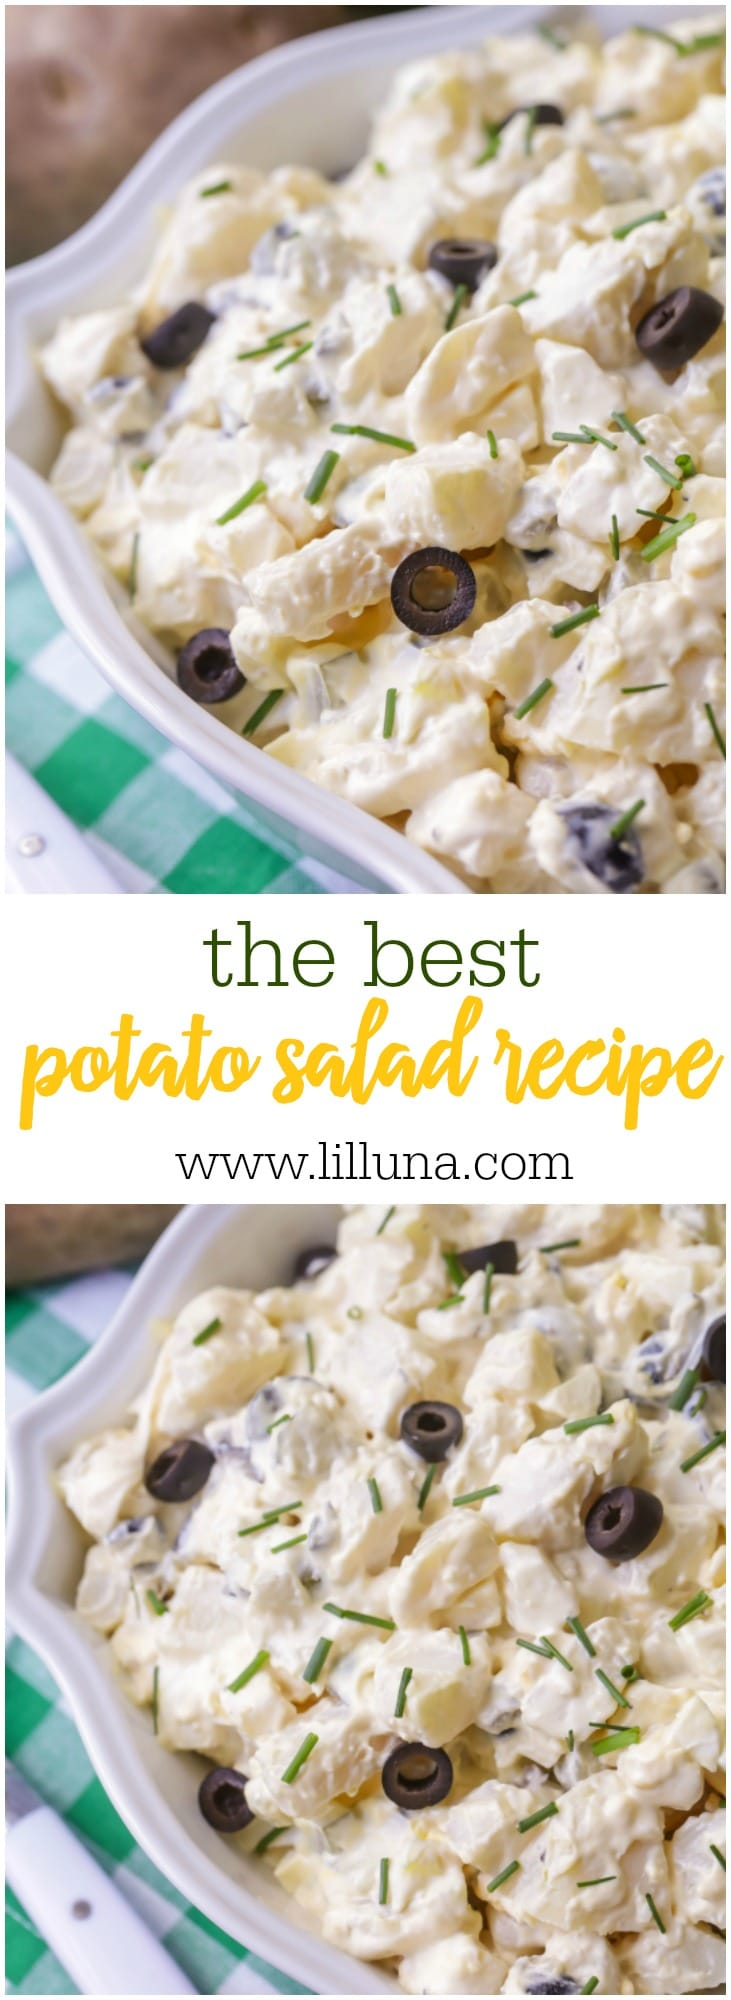 Our all-time favorite Potato Salad - it's simple, flavorful and filled with chunks of potatoes, eggs and olives - perfect for any event!